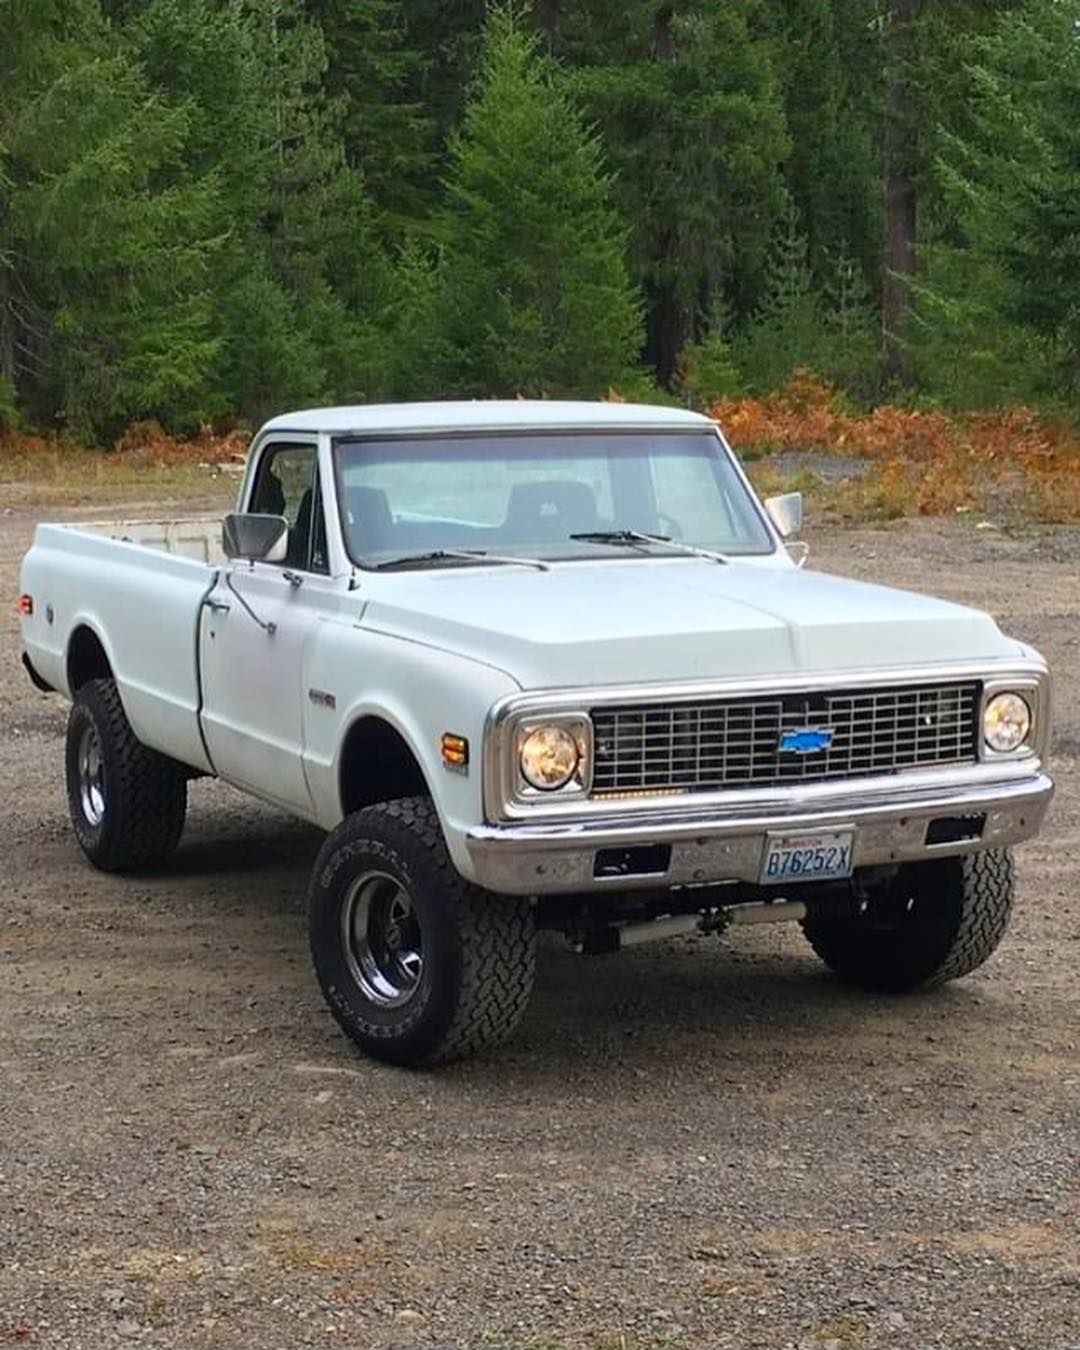 Check out kyles 1972 chevy k10 heres the stor 72